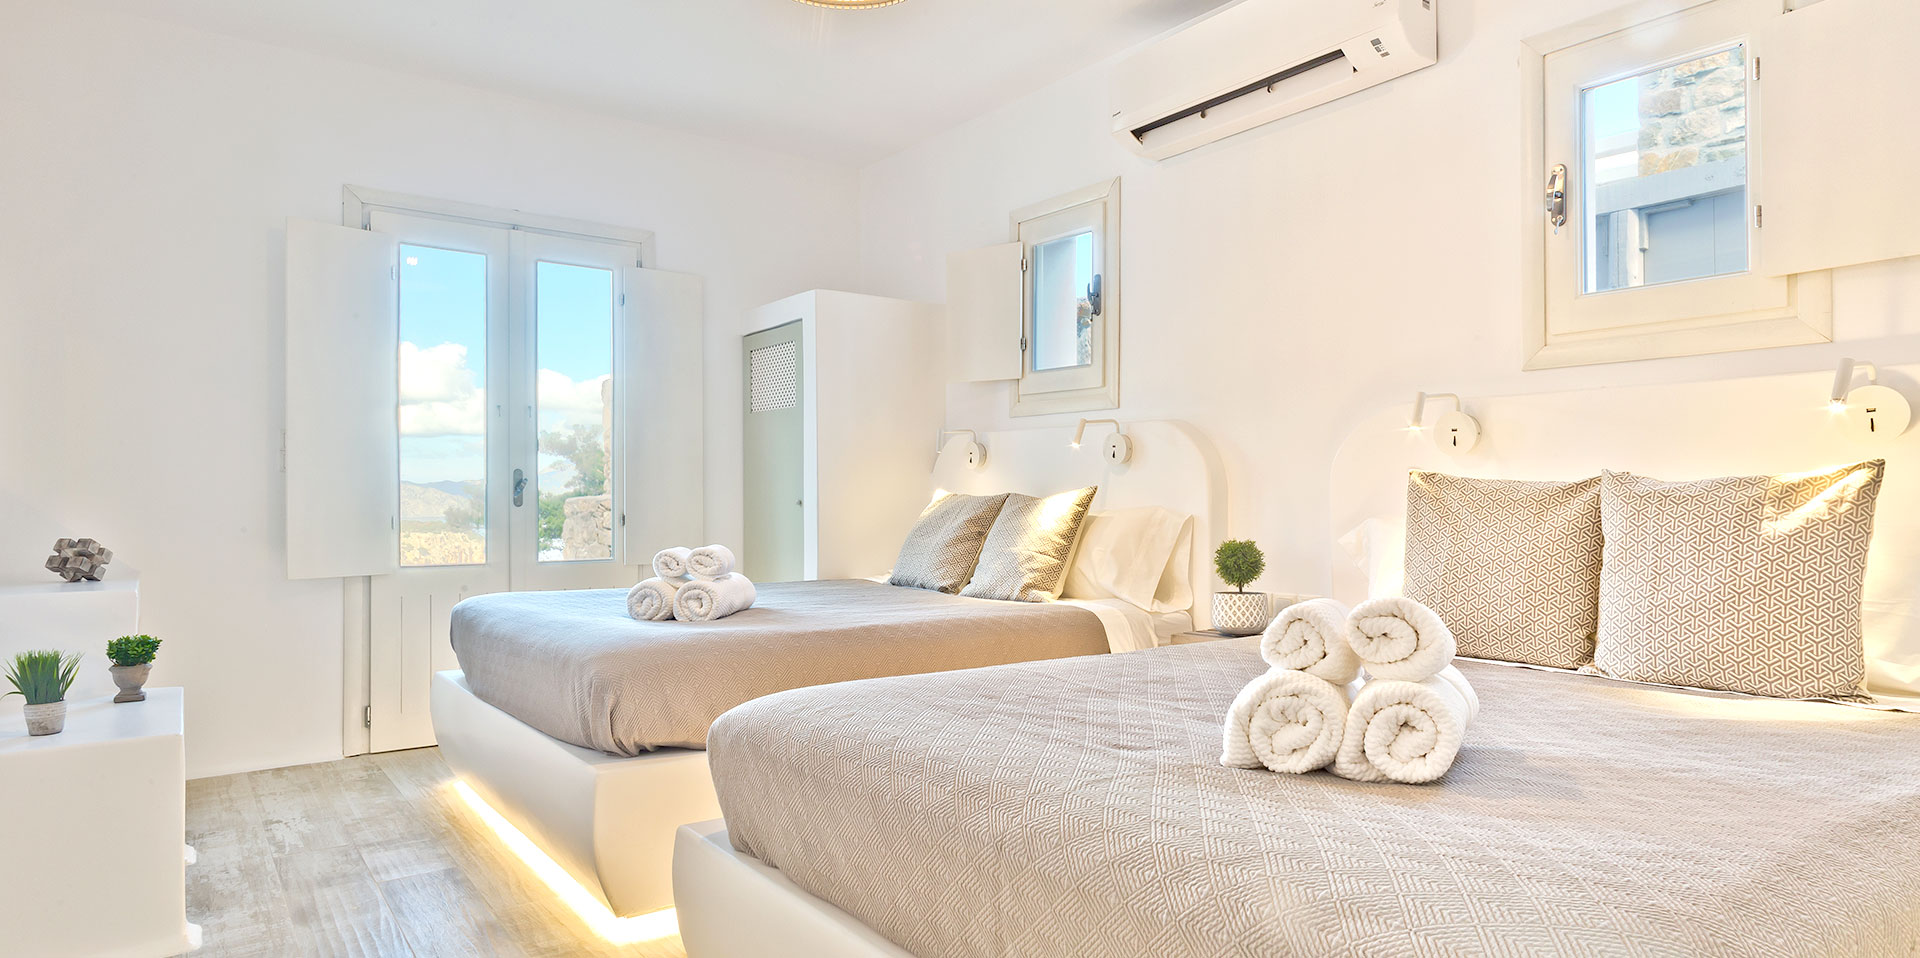 Lux View Villas Agean Sea View Villas Karpathos